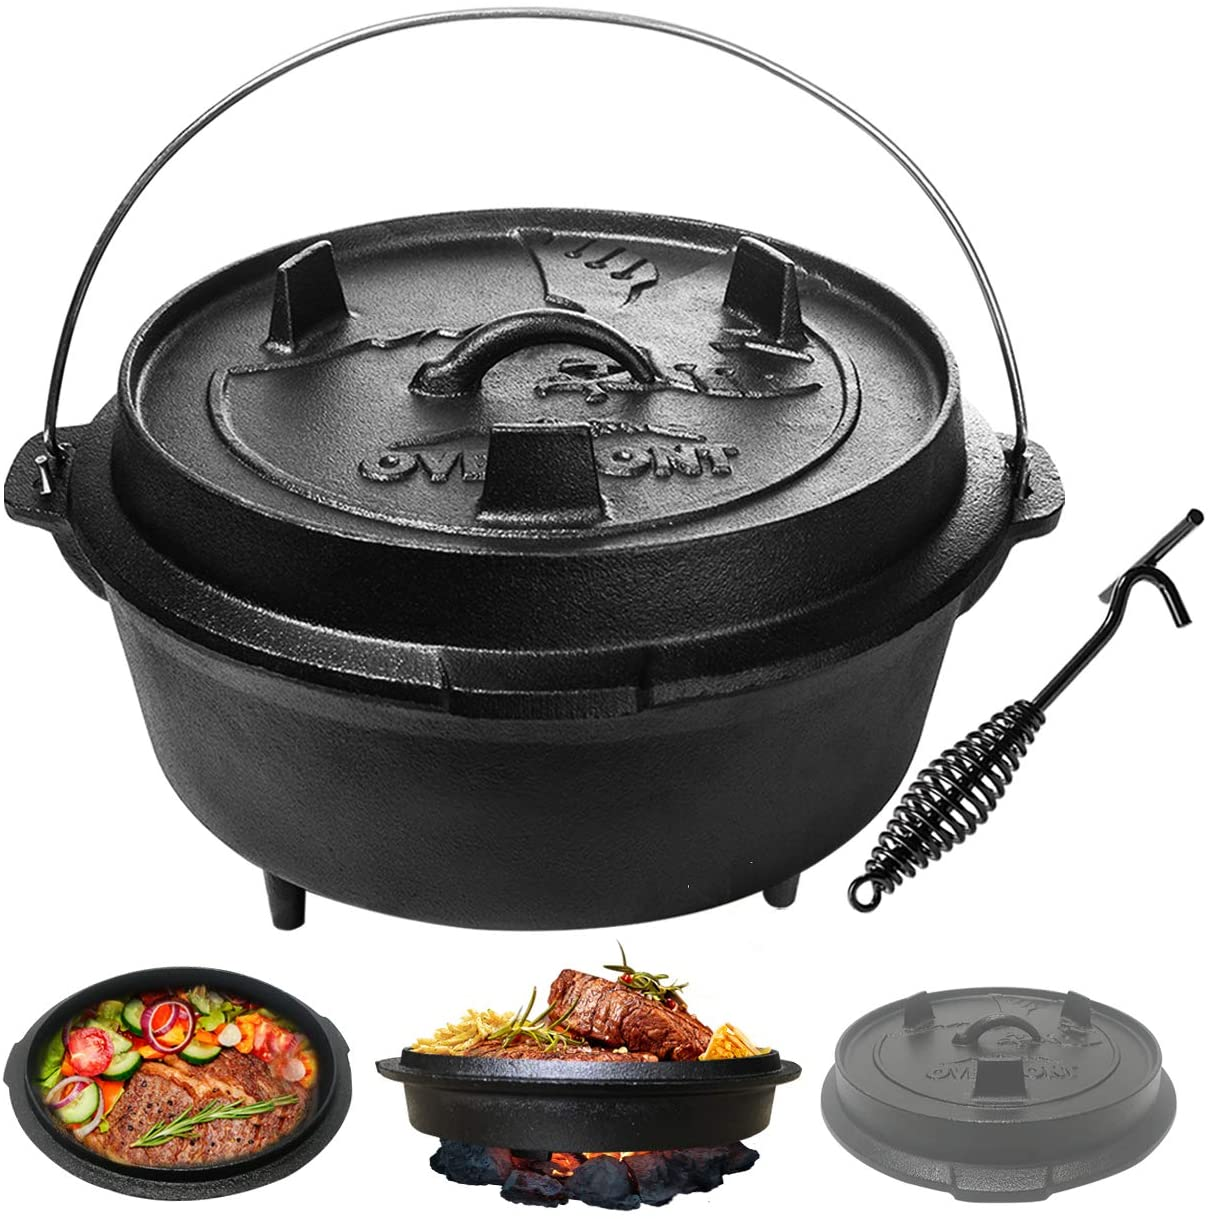 Overmont Camp Double Dutch Oven 8qt Pot Lid All Round Cast Iron Casserole Pot Dual Function Lid Skillet Pre Seasoned With Lid Lifter Handle For Camping Cooking Bbq Baking Walmart Com Walmart Com